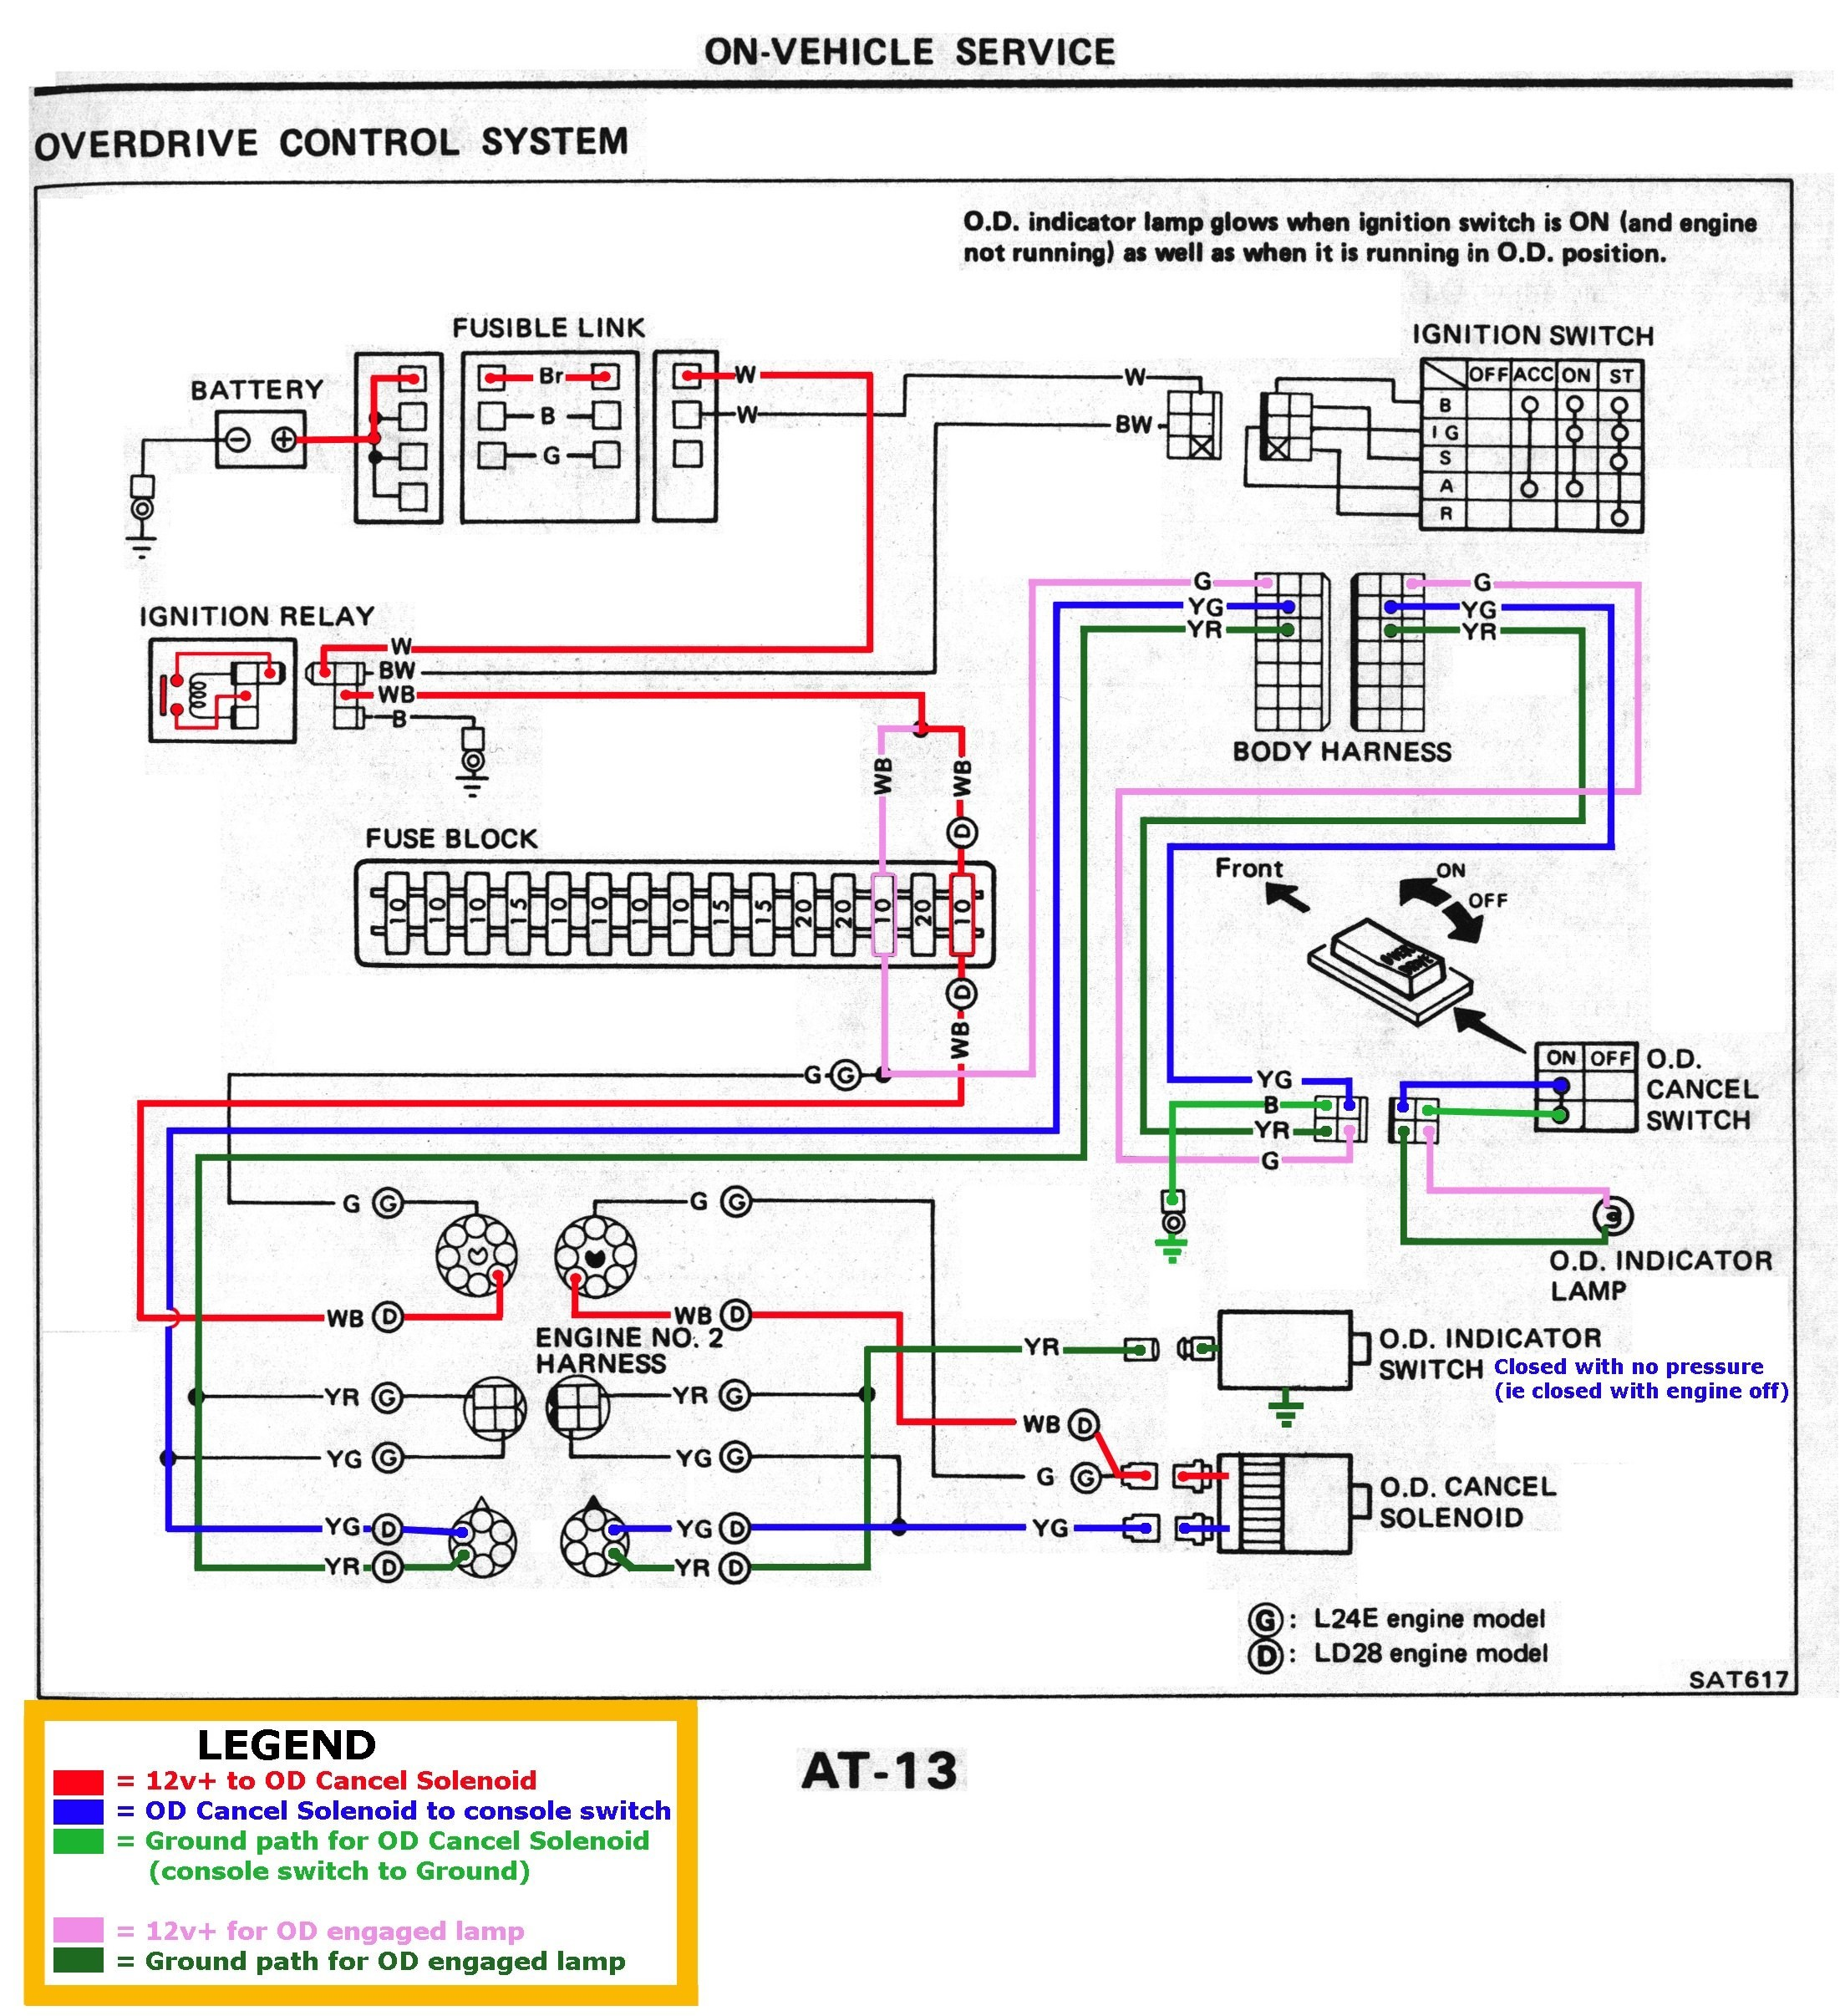 Diesel Engine Alternator Wiring Diagram Nissan 300zx Engine Diagram Of  Diesel Engine Alternator Wiring Diagram Alternator